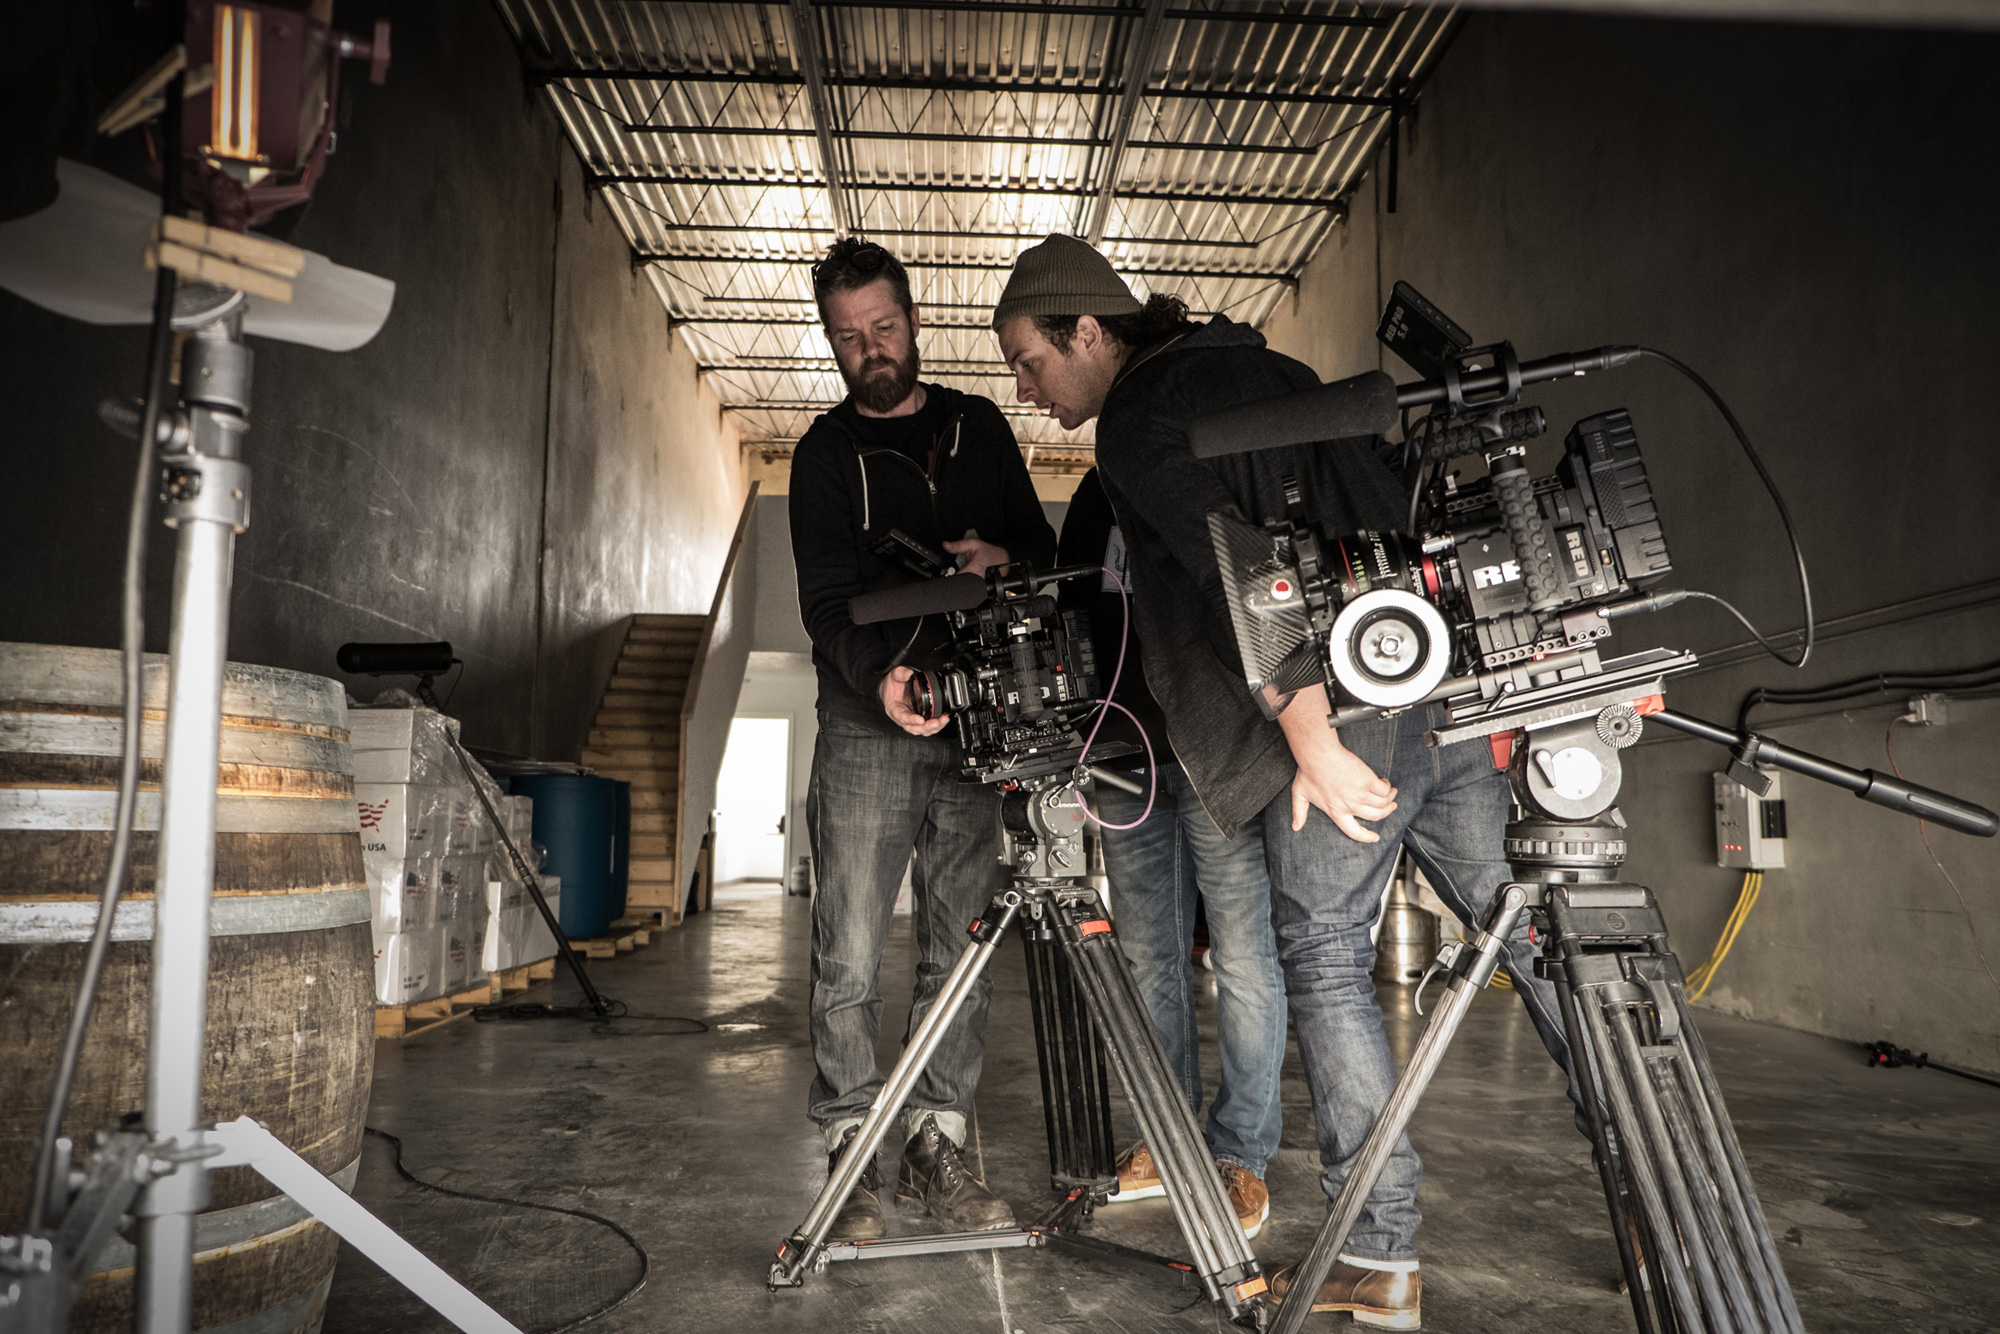 Beehive Distilling Small Batch Craft Gin Salt Lake City Utah 3